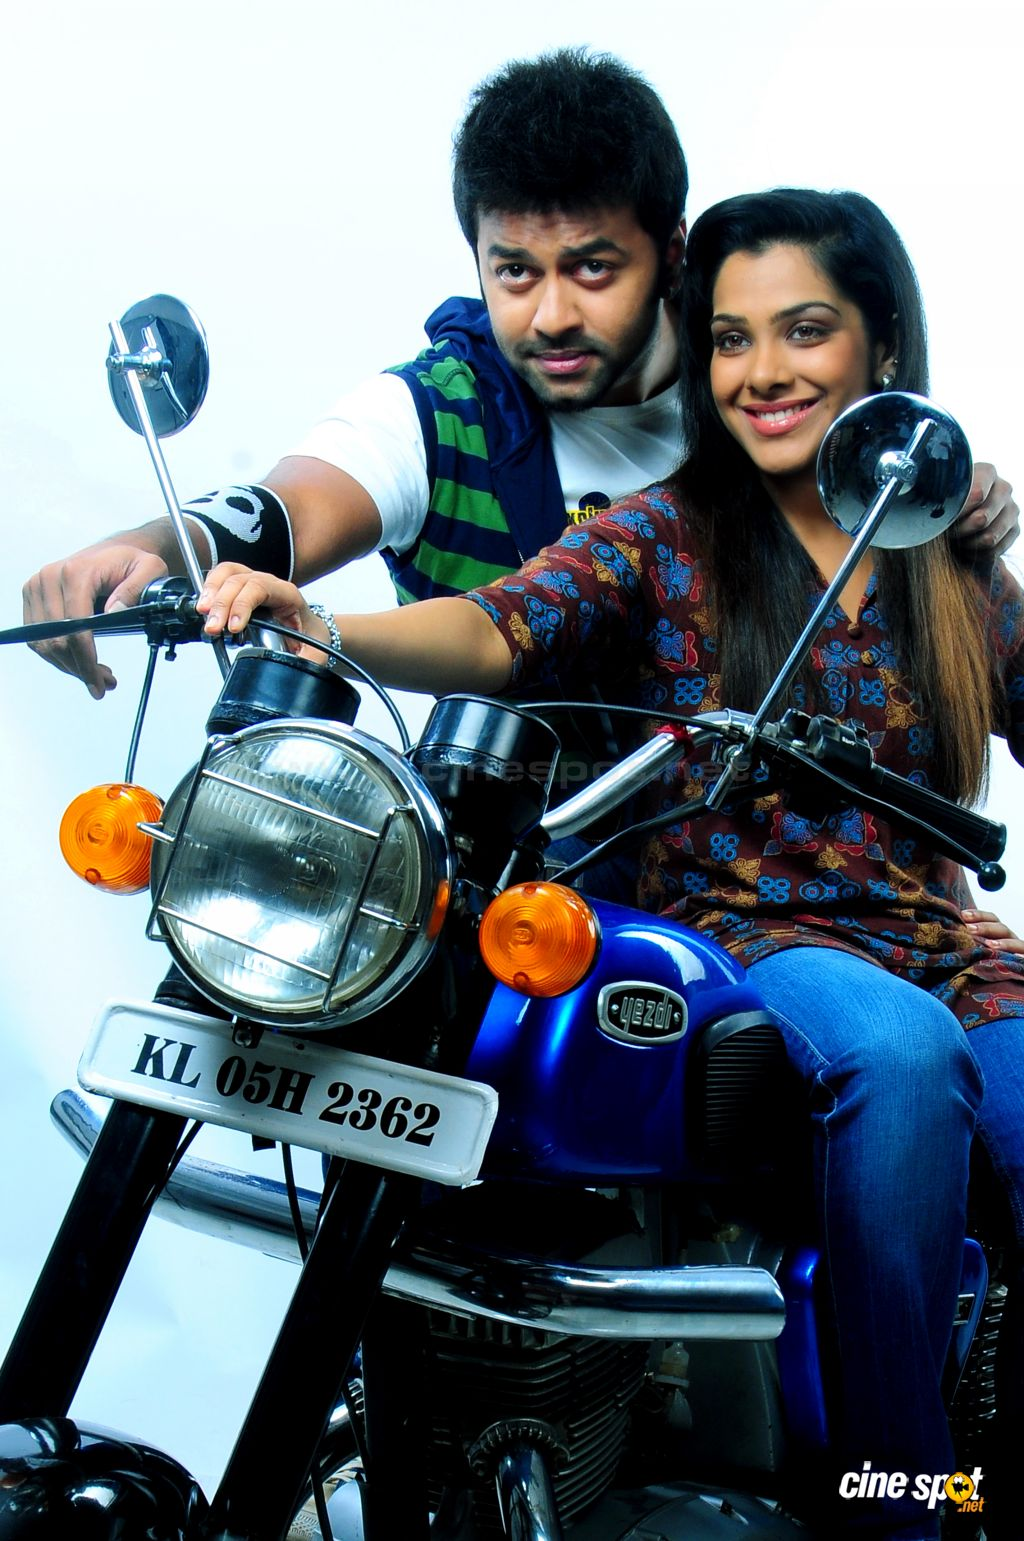 3 kings full movie malayalam / The movie suite life of zack